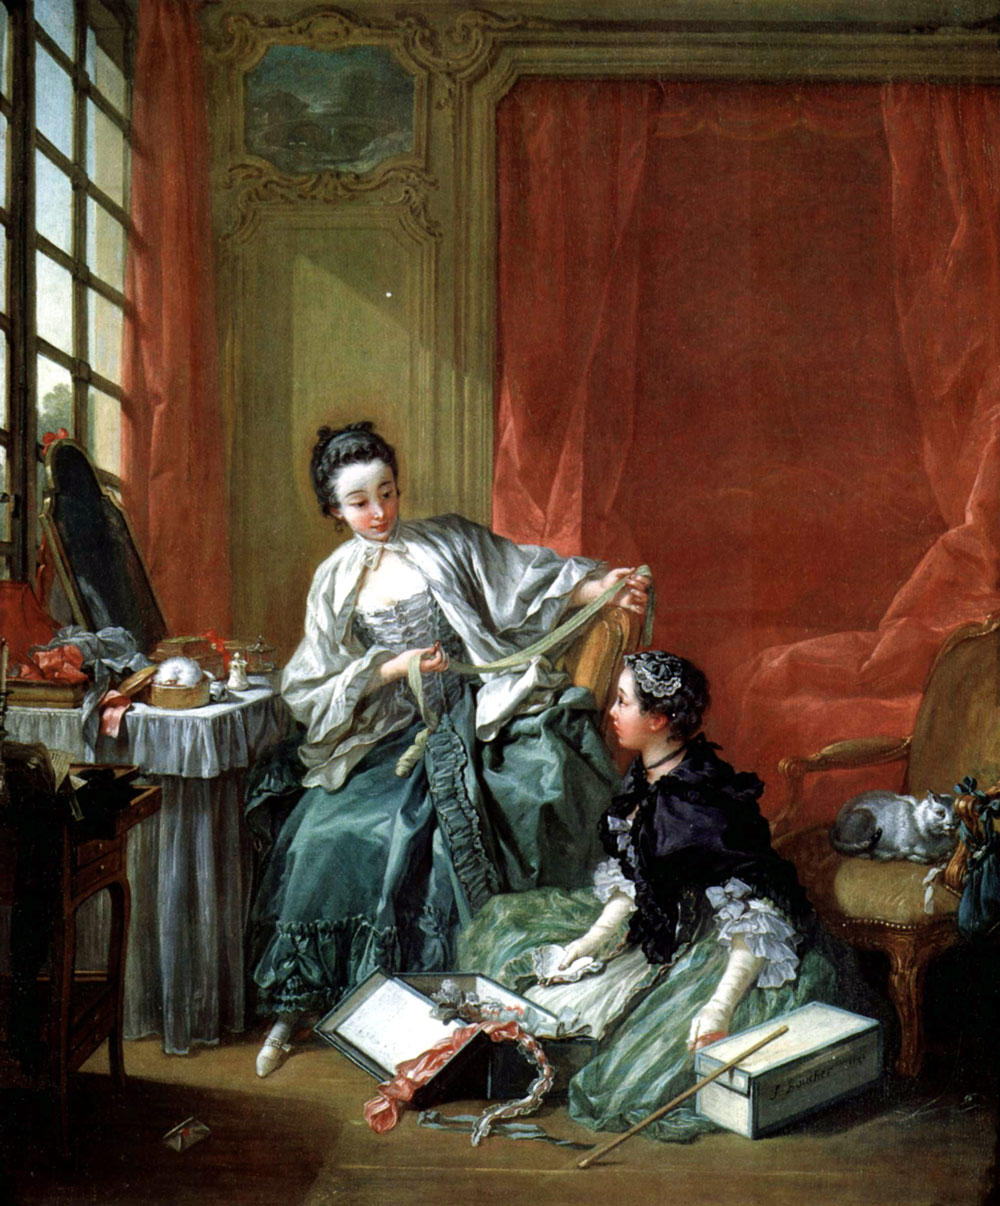 fashion to die for did an addiction to fads lead marie antoinette franccedilois boucher painted this scene in 1746 entitled la ande de modes